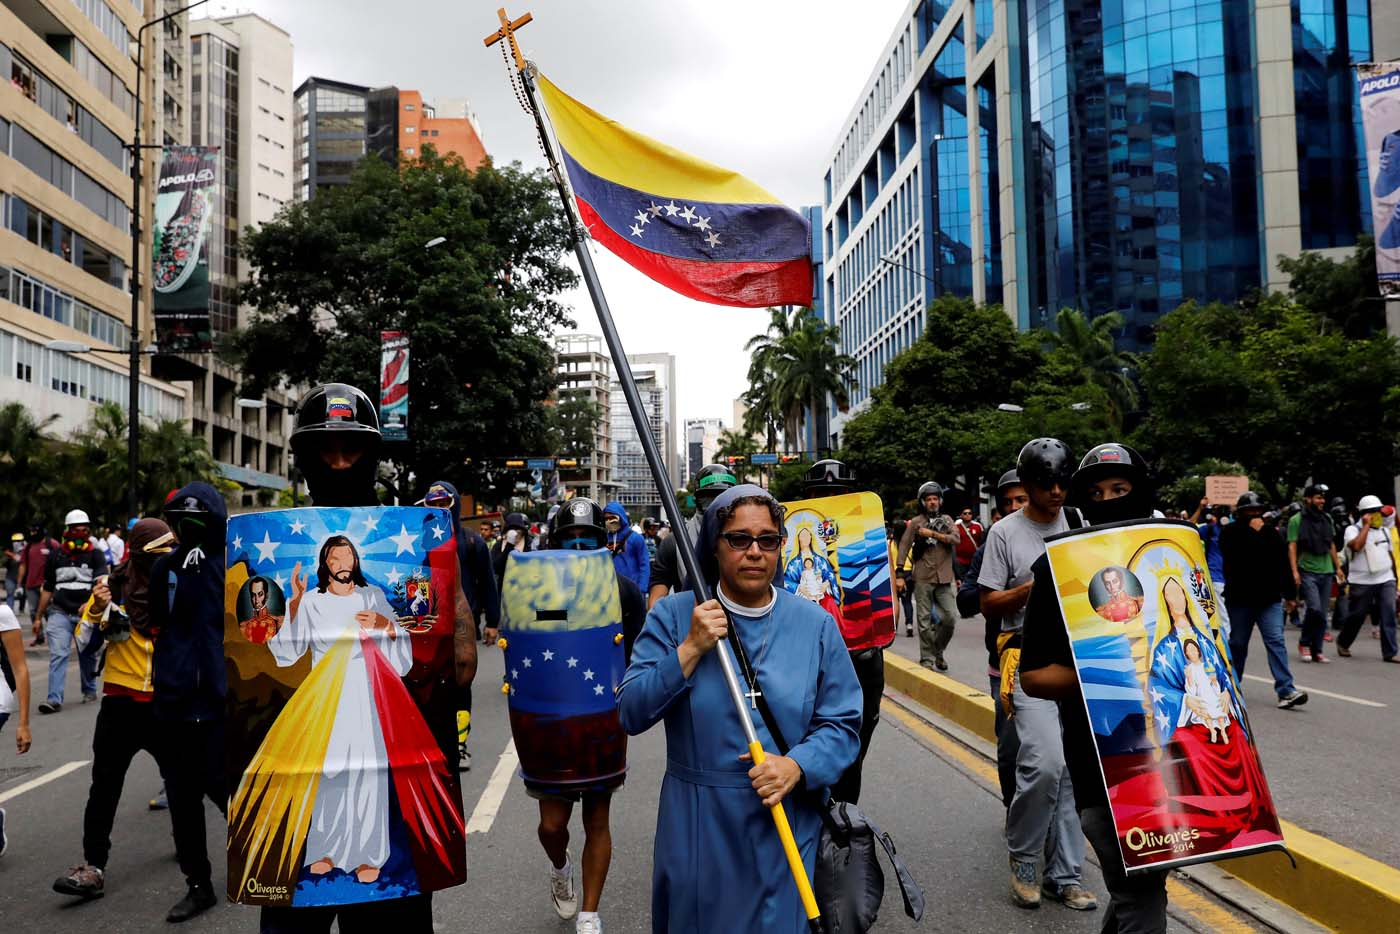 FILE PHOTO: A nun carries Venezuelan flag next to demonstrators carrying homemade shields with religious images, during a rally against Venezuelan President Nicolas Maduro's government in Caracas, Venezuela June 7, 2017. Picture taken June 7, 2017. REUTERS/Carlos Garcia Rawlins/File Photo